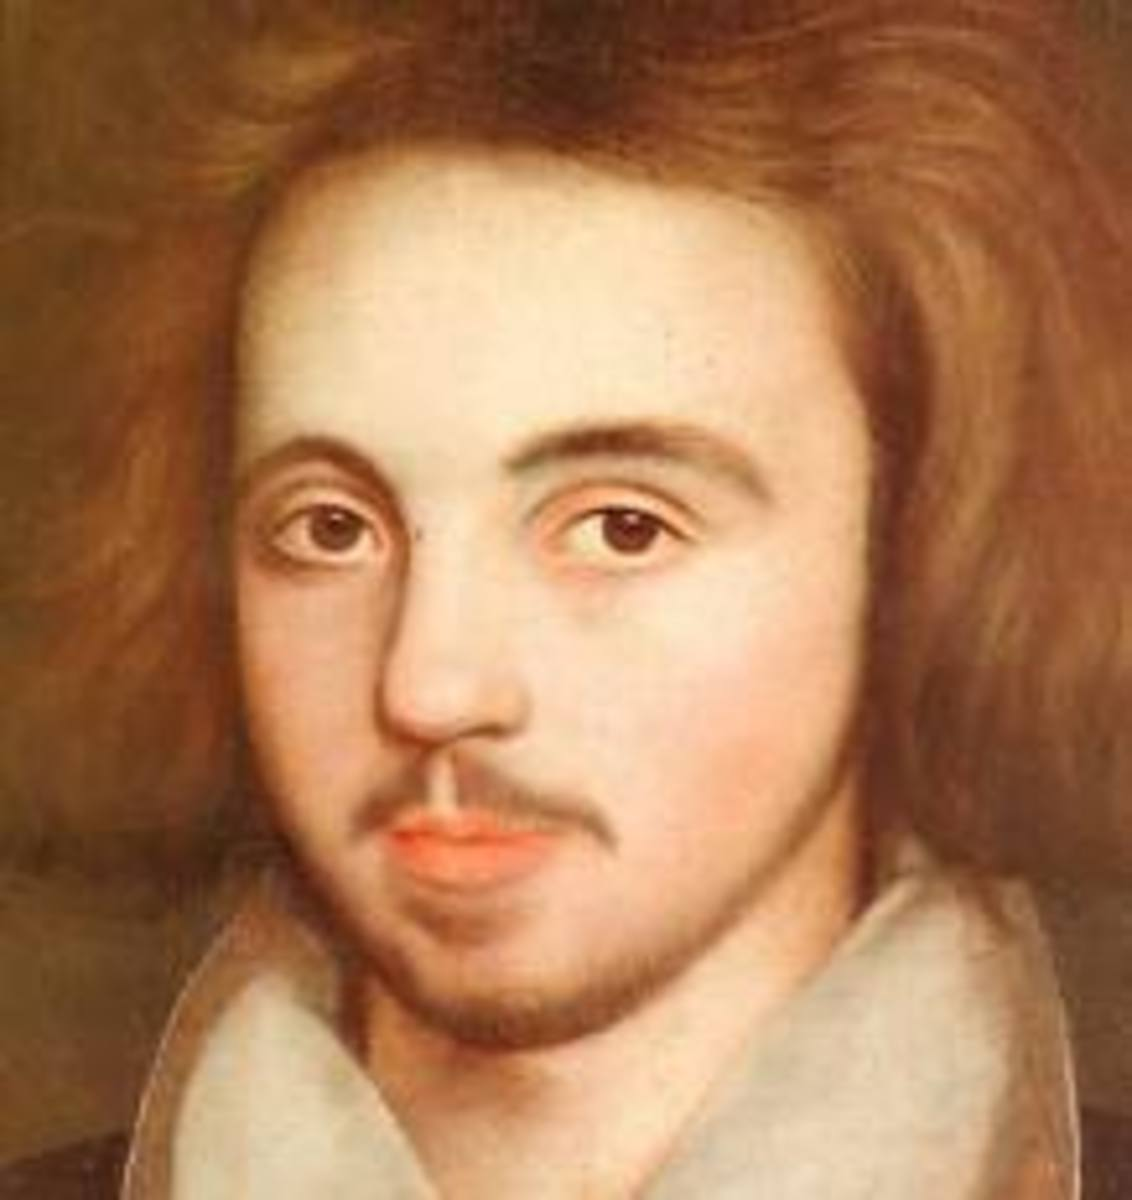 Christopher Marlowe (bap. 1564-1593)